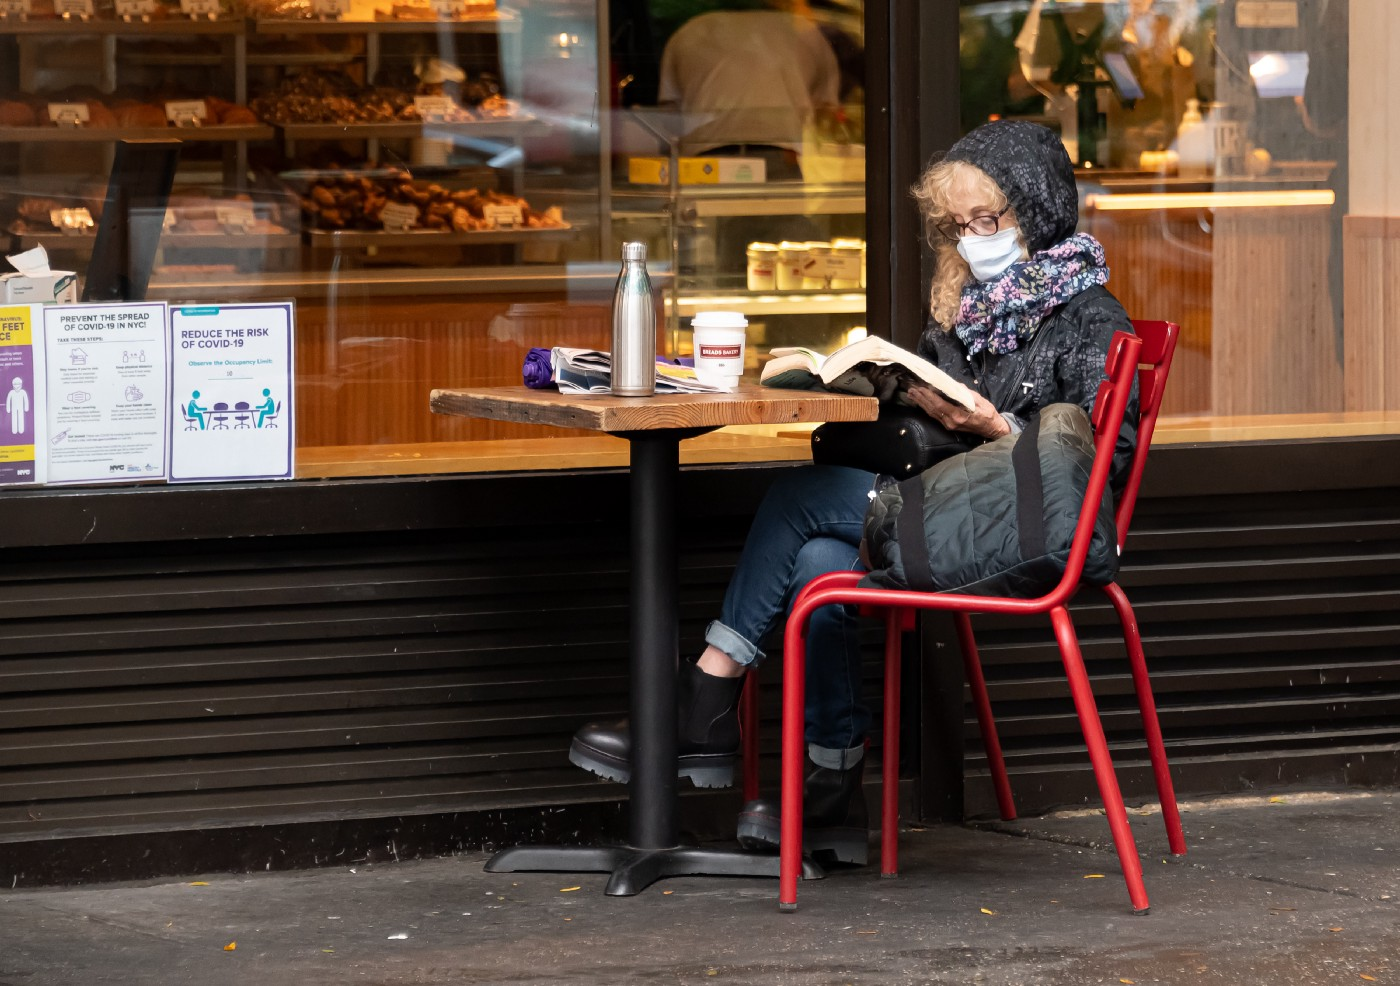 Older woman wearing face mask reading a book outside a cafe.